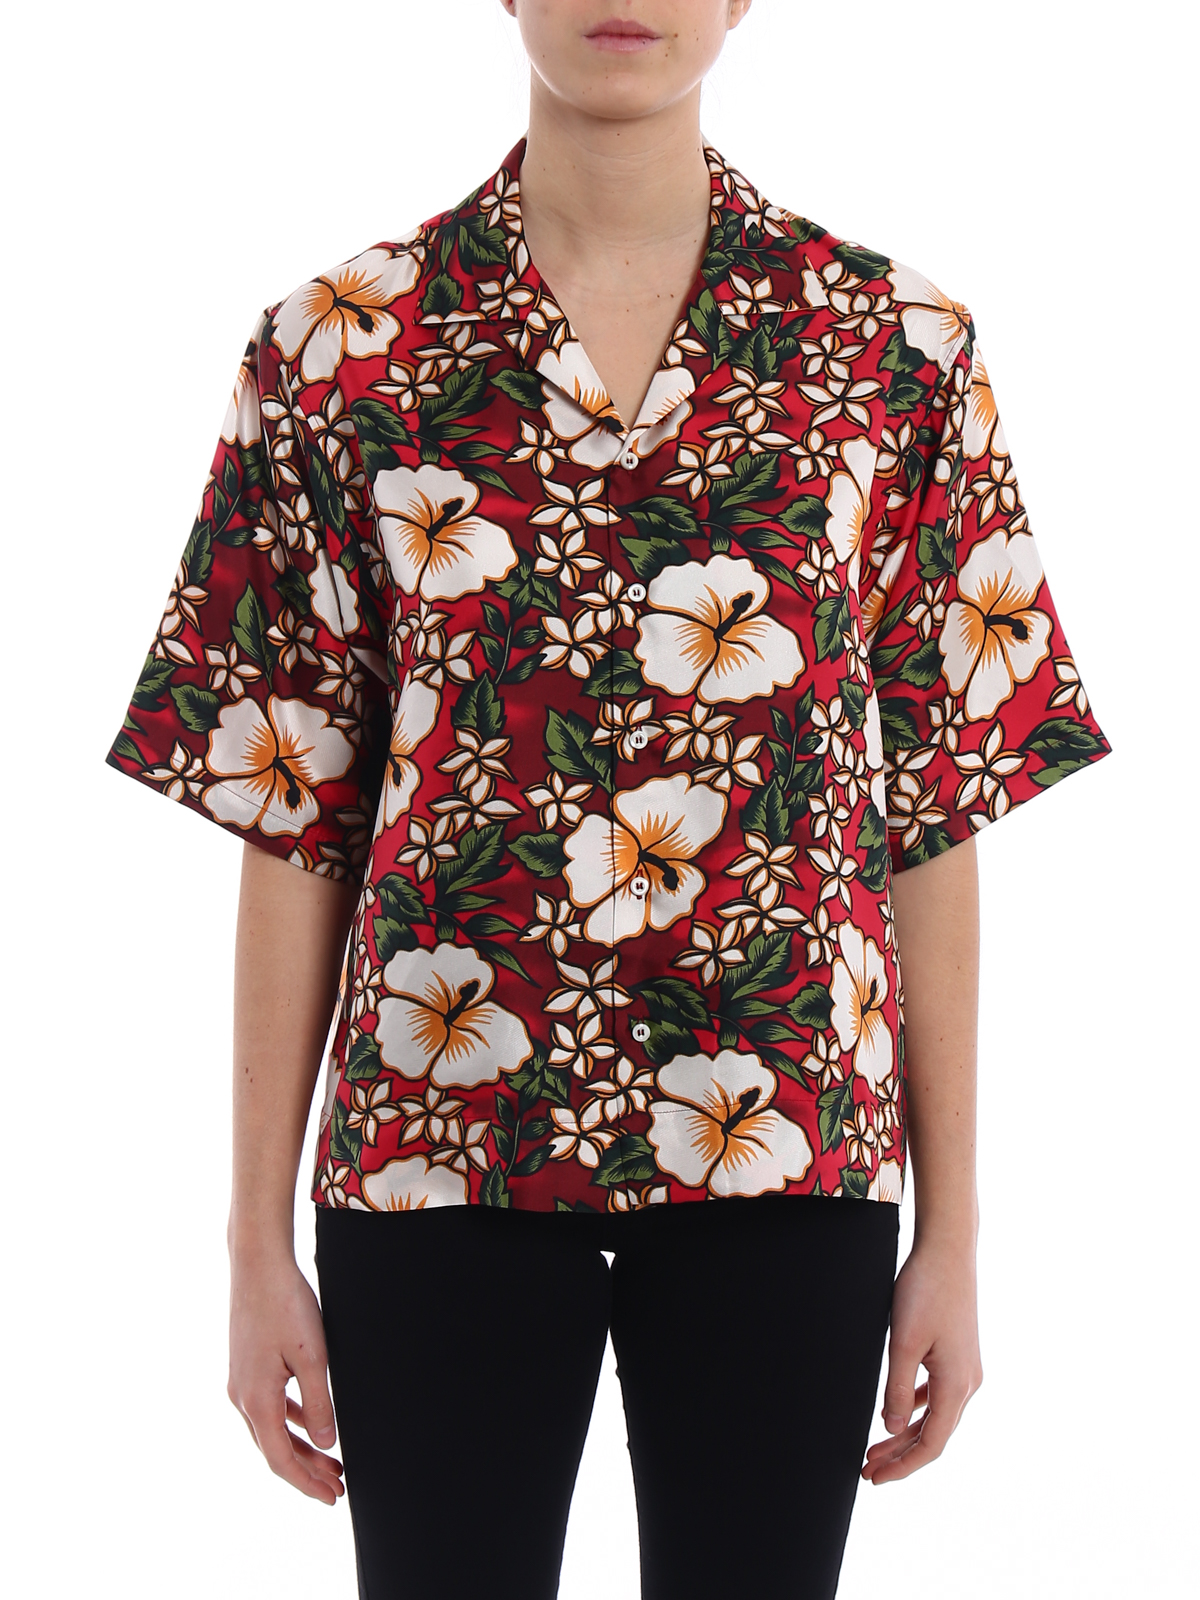 Hibiscus silk shirt Dsquared2 100% Authentic For Sale Clearance 2018 Outlet Store Locations Free Shipping Shopping Online For Nice For Sale 177UWtBZJi